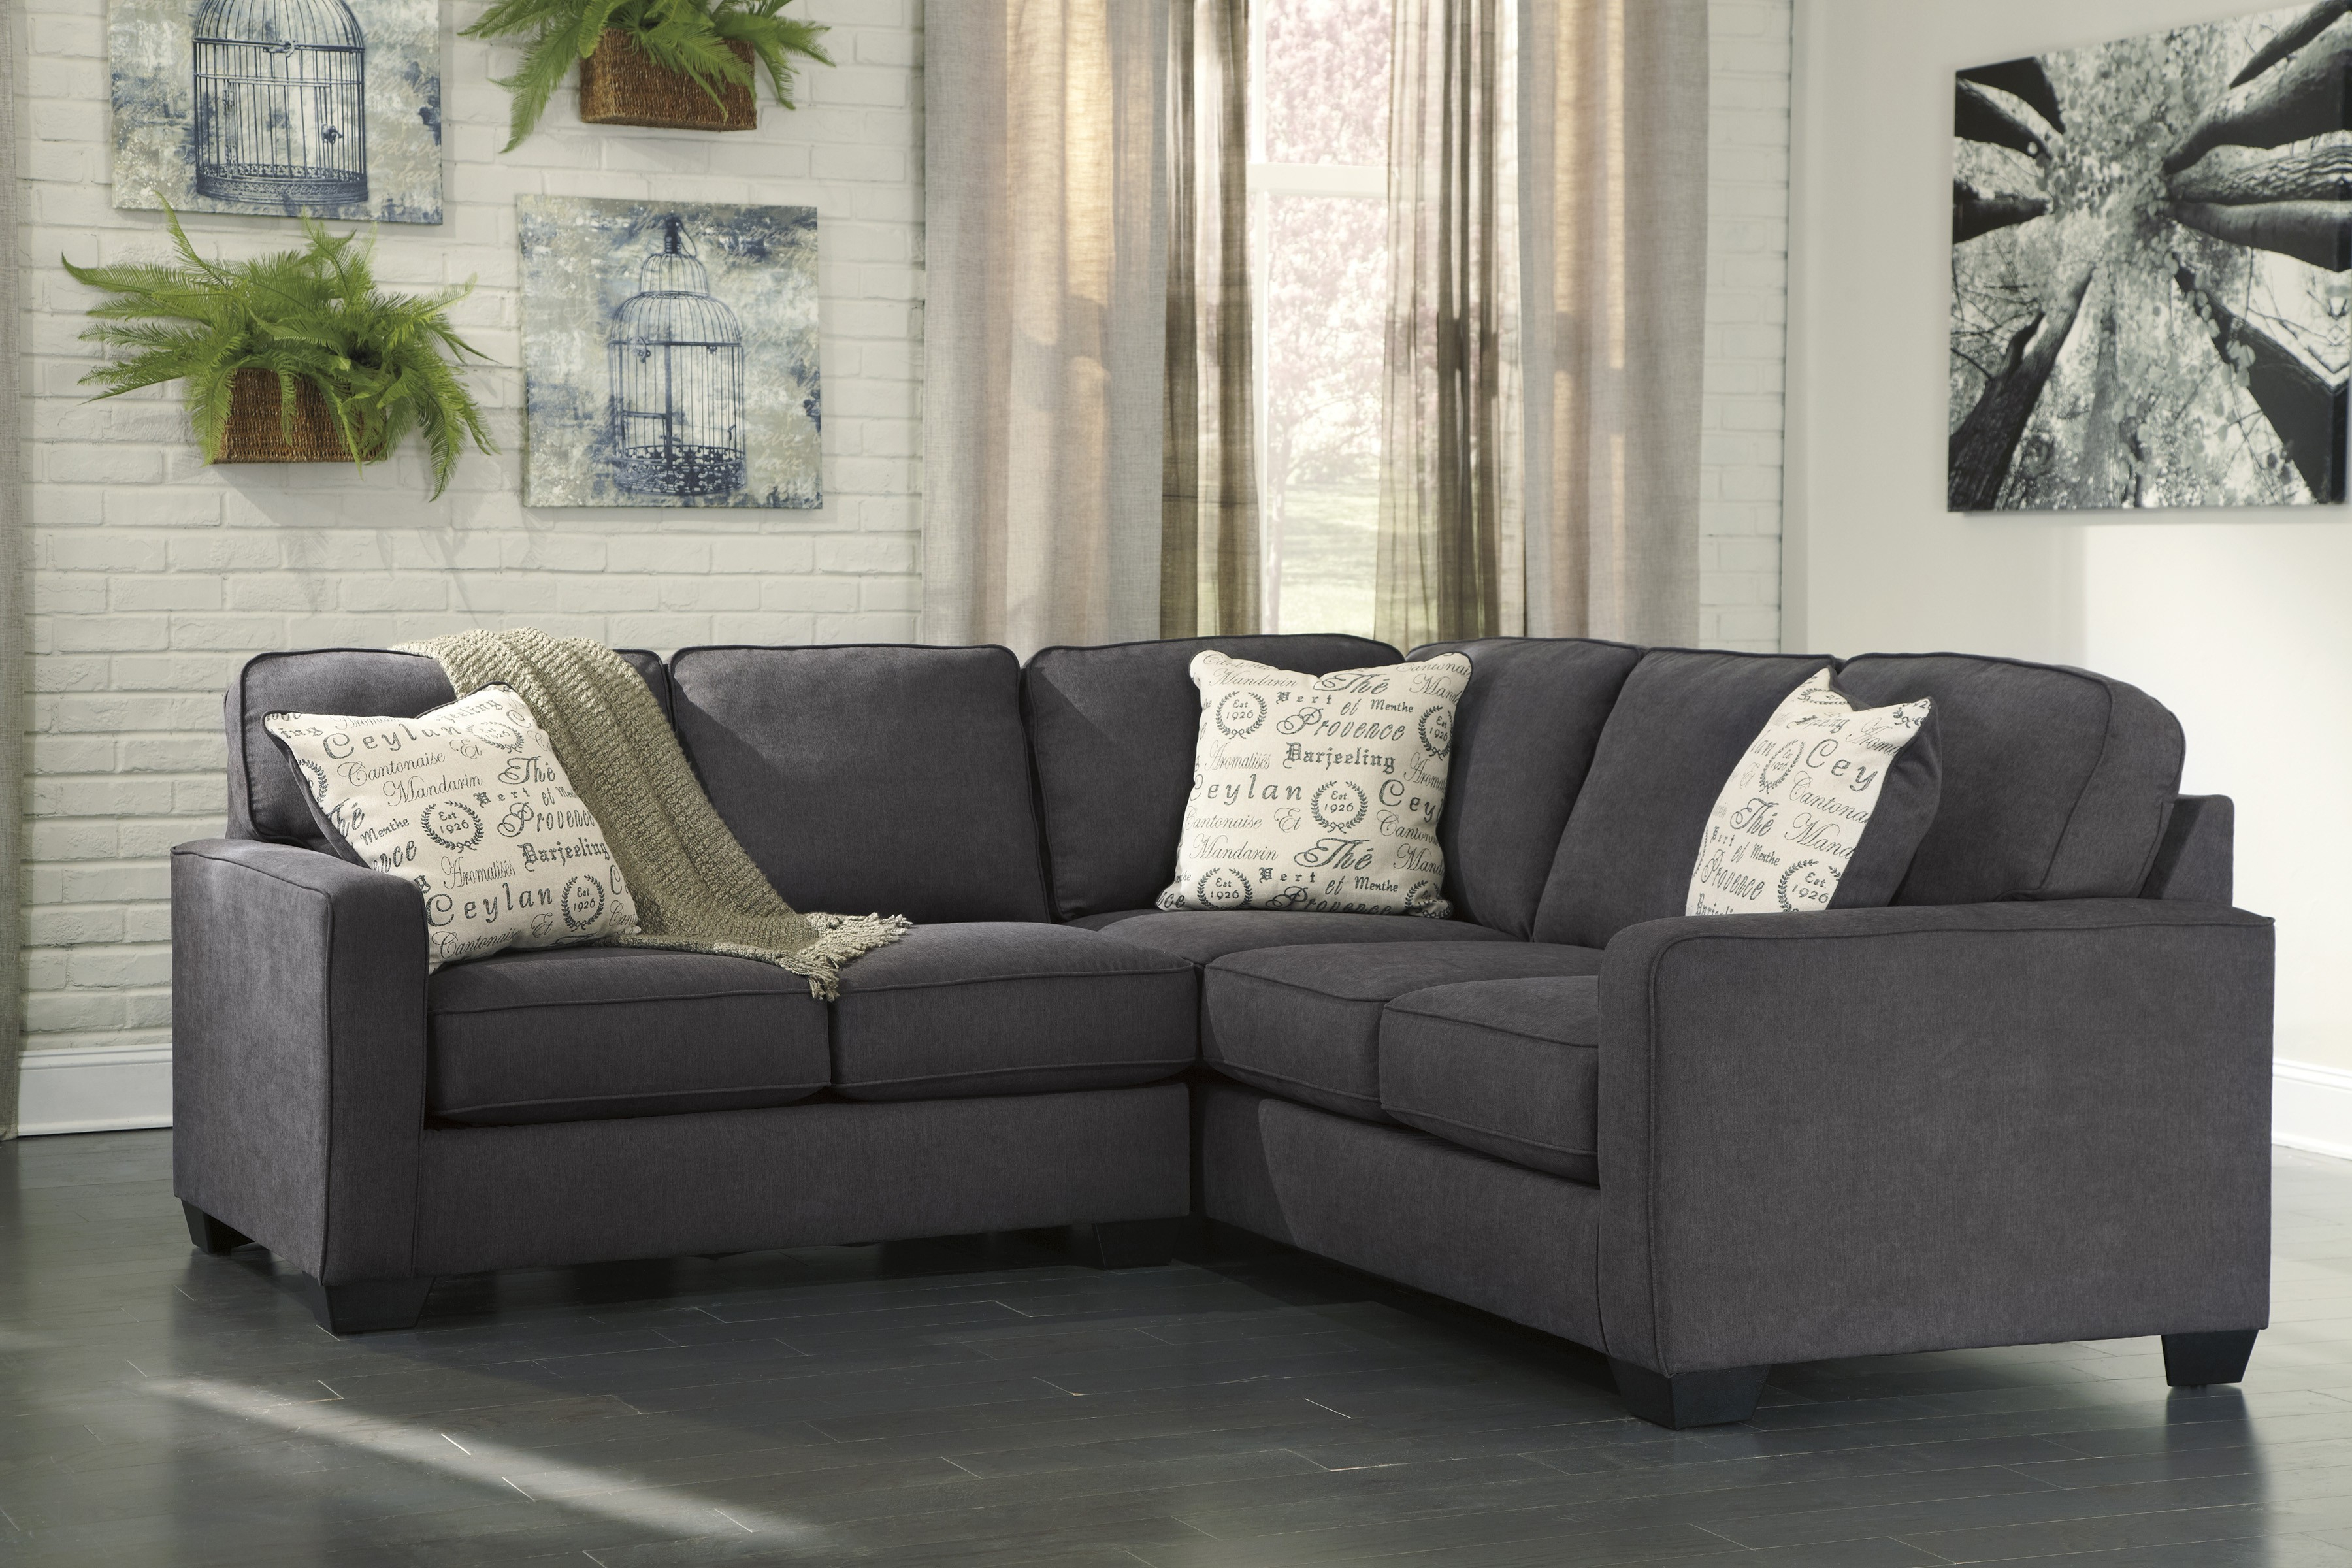 Fashionable Lovely 2 Piece Sectional Sofa – Buildsimplehome Intended For Evan 2 Piece Sectionals With Raf Chaise (Gallery 7 of 20)